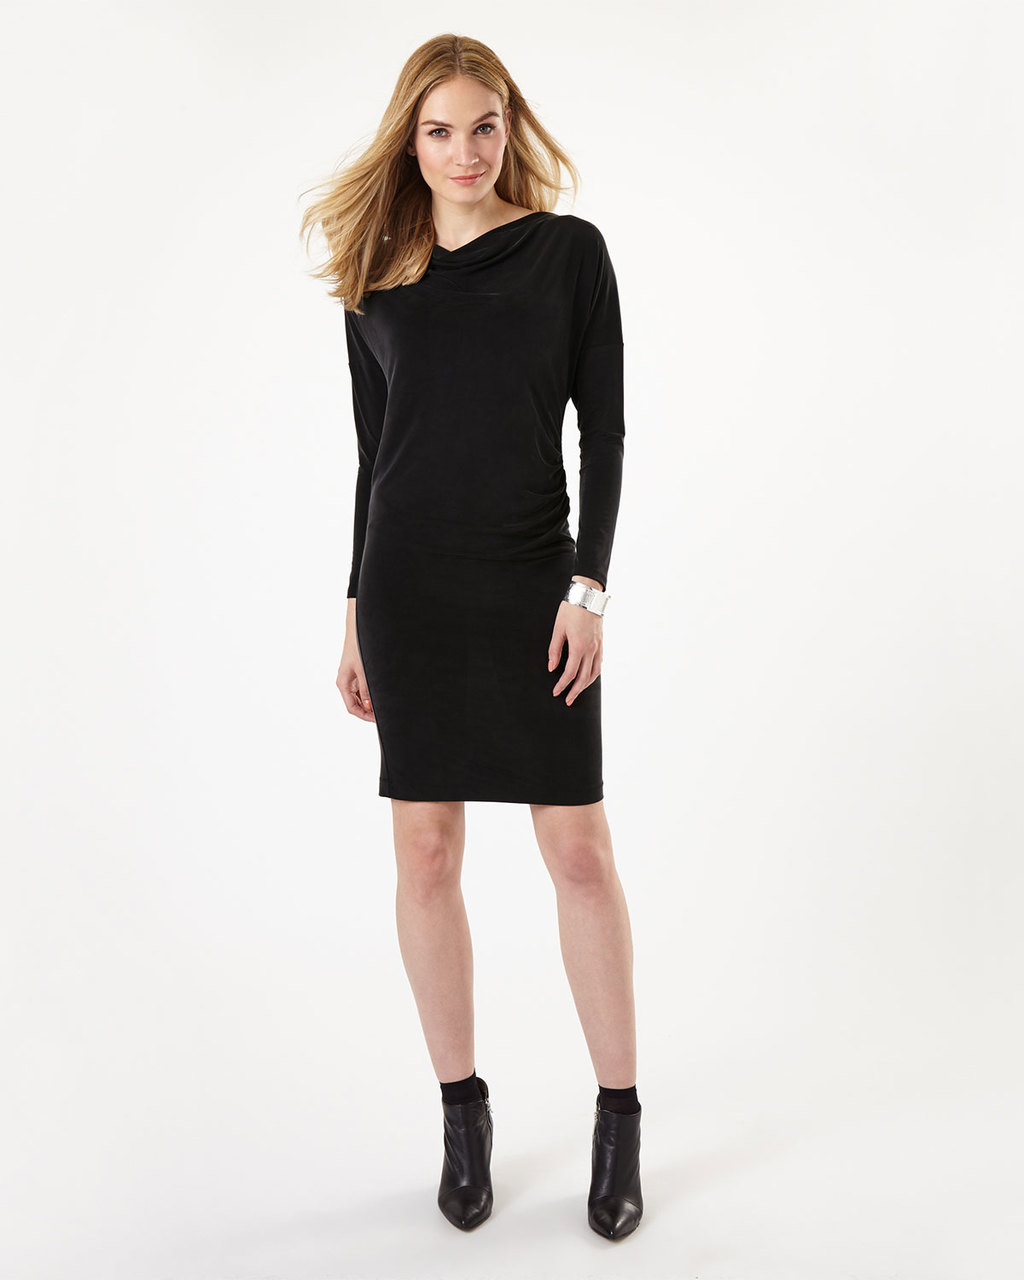 Cia Cupro Dress - style: shift; neckline: cowl/draped neck; pattern: plain; predominant colour: black; occasions: evening; length: just above the knee; fit: body skimming; fibres: cotton - stretch; sleeve length: long sleeve; sleeve style: standard; pattern type: fabric; texture group: jersey - stretchy/drapey; season: a/w 2016; wardrobe: event